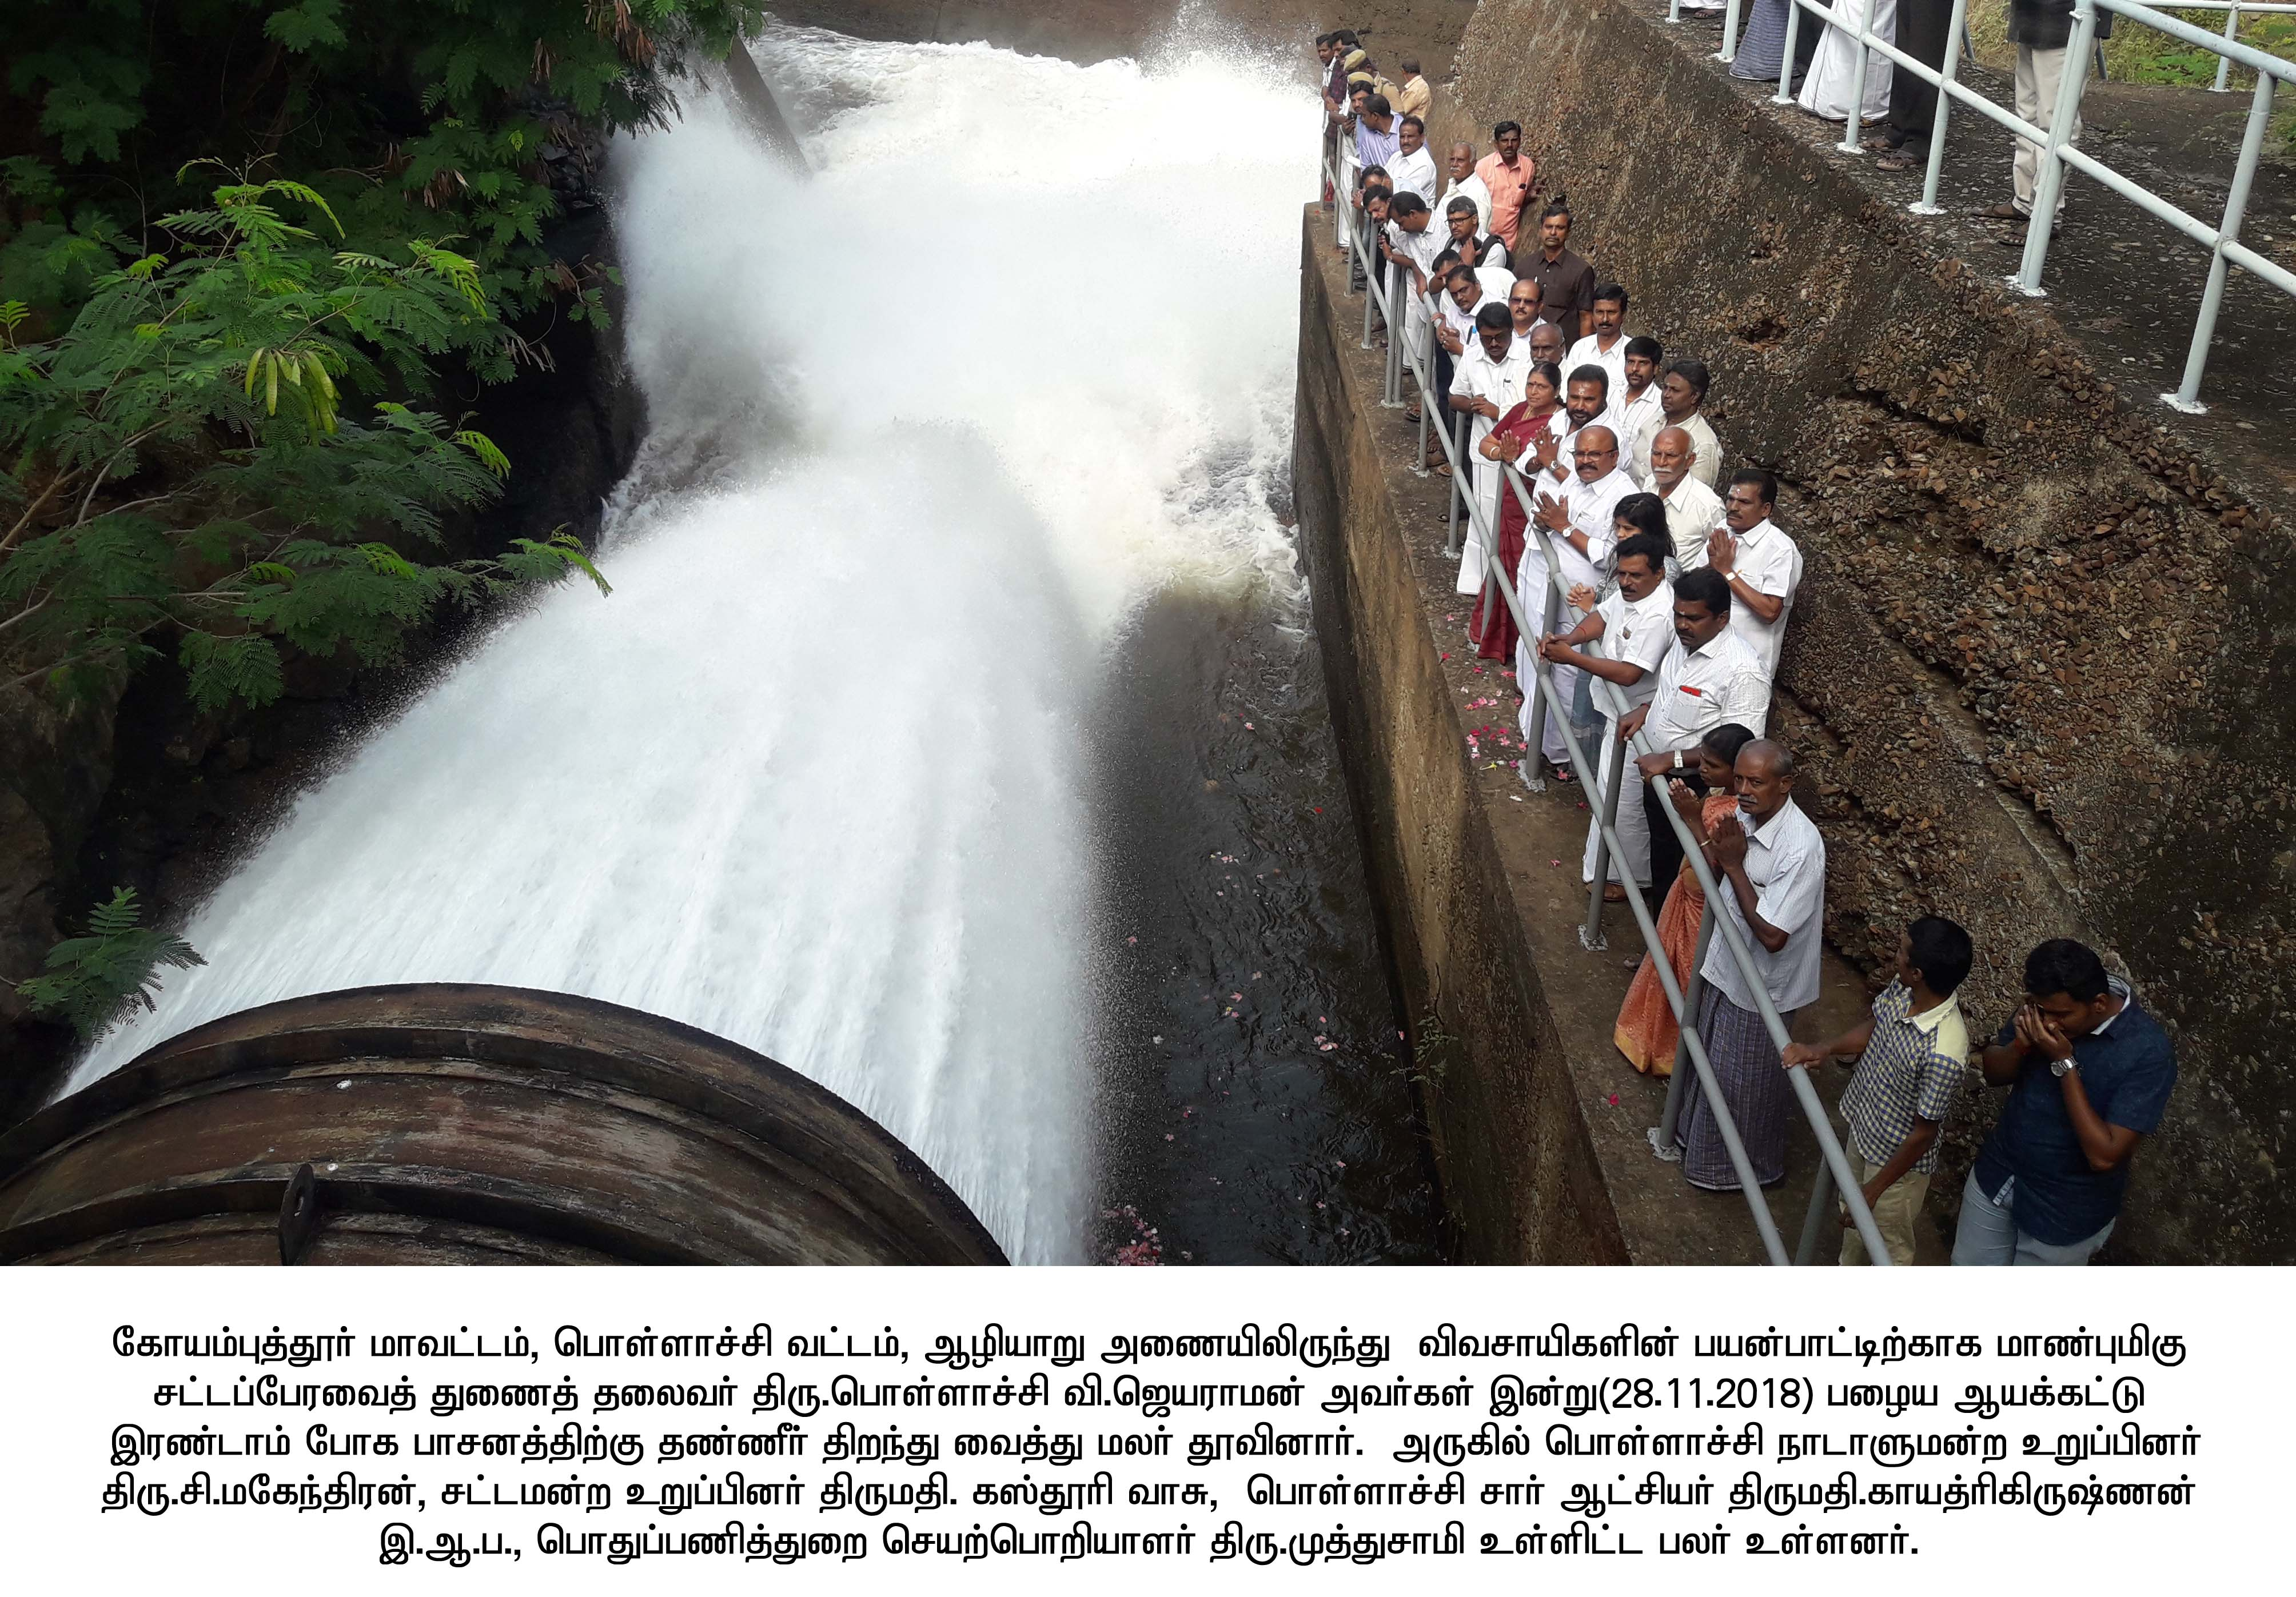 Aliyar dam water released for farmers cultivation usage